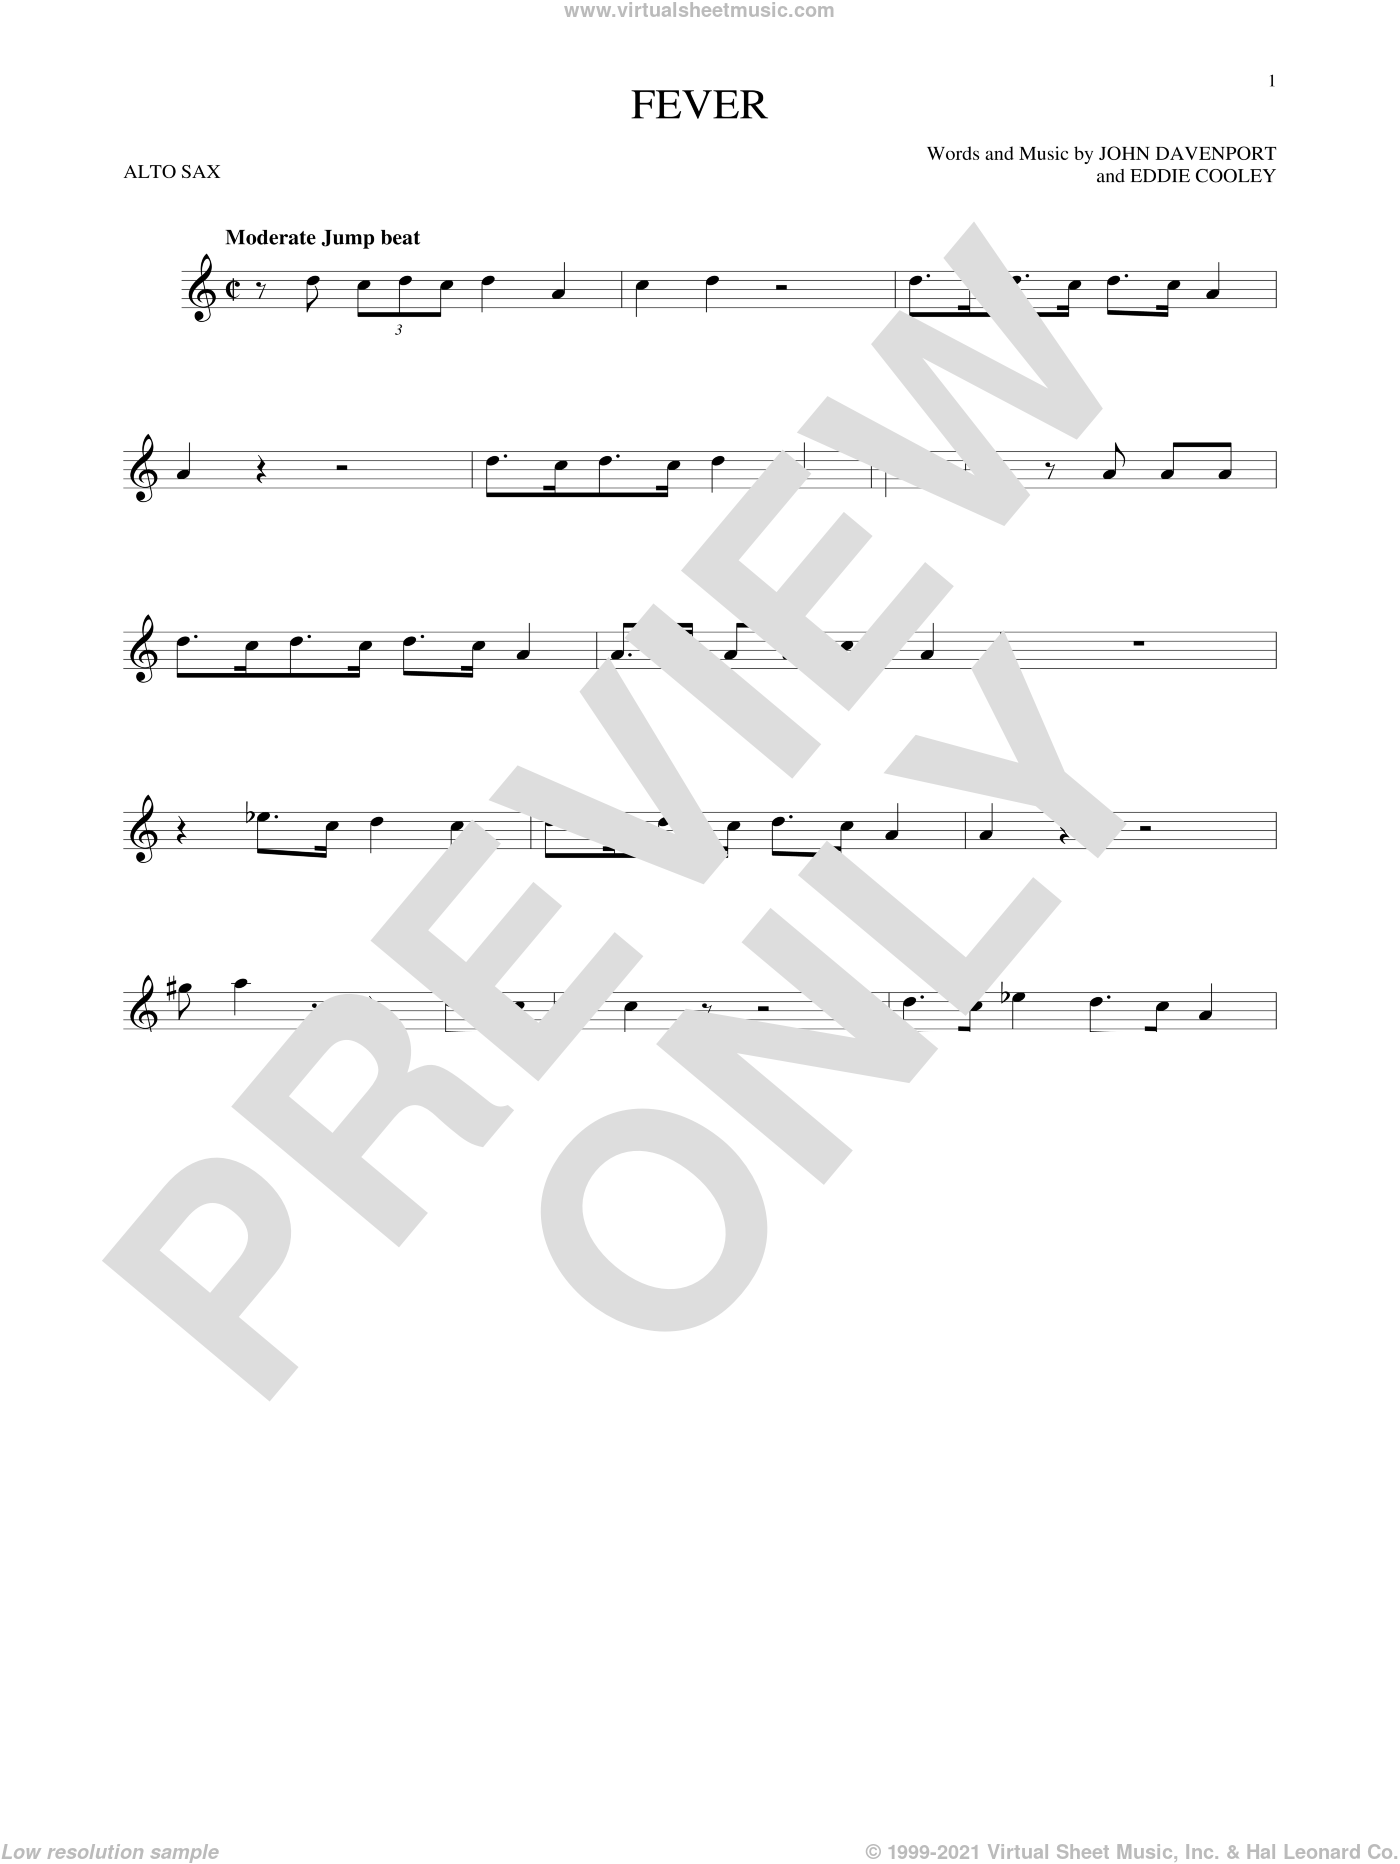 Fever sheet music for alto saxophone solo by Eddie Cooley, Peggy Lee and John Davenport, intermediate skill level